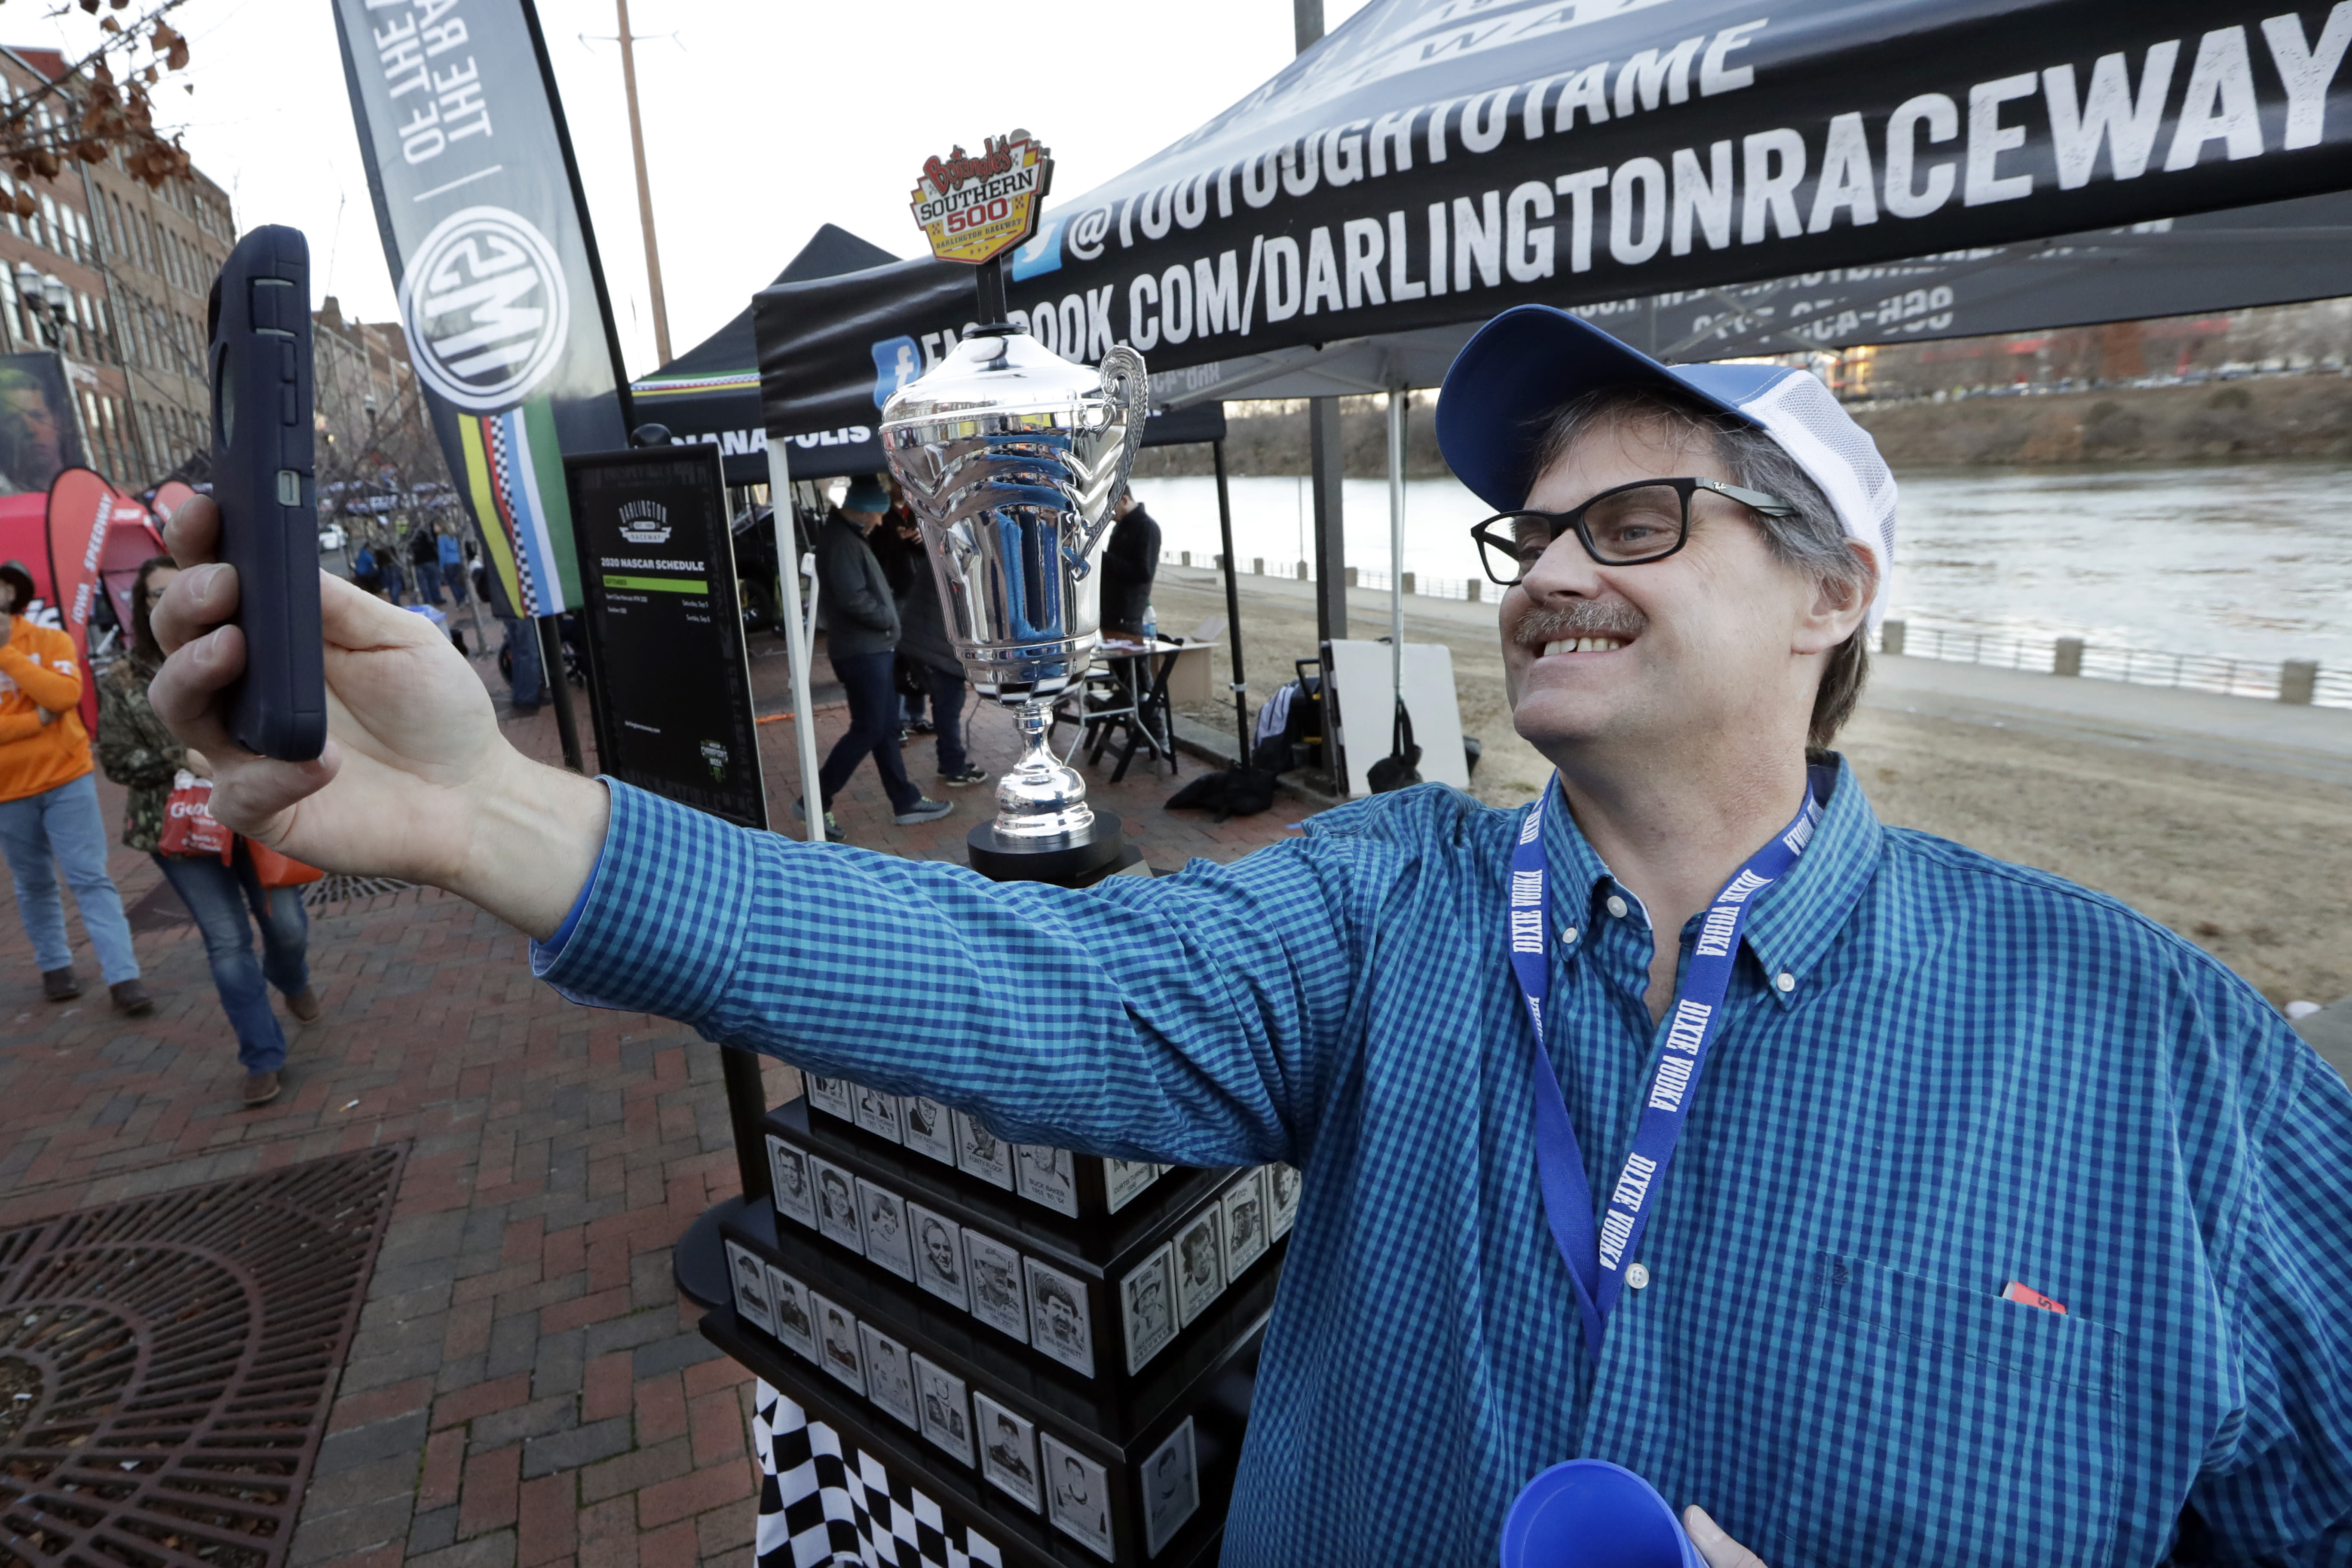 Louis Buckley takes a photo by the Darlington Raceway Southern 500 winner's trophy Wednesday, Dec. 4, 2019, during NASCAR Champion's Week in Nashville, Tenn. (AP Photo/Mark Humphrey)